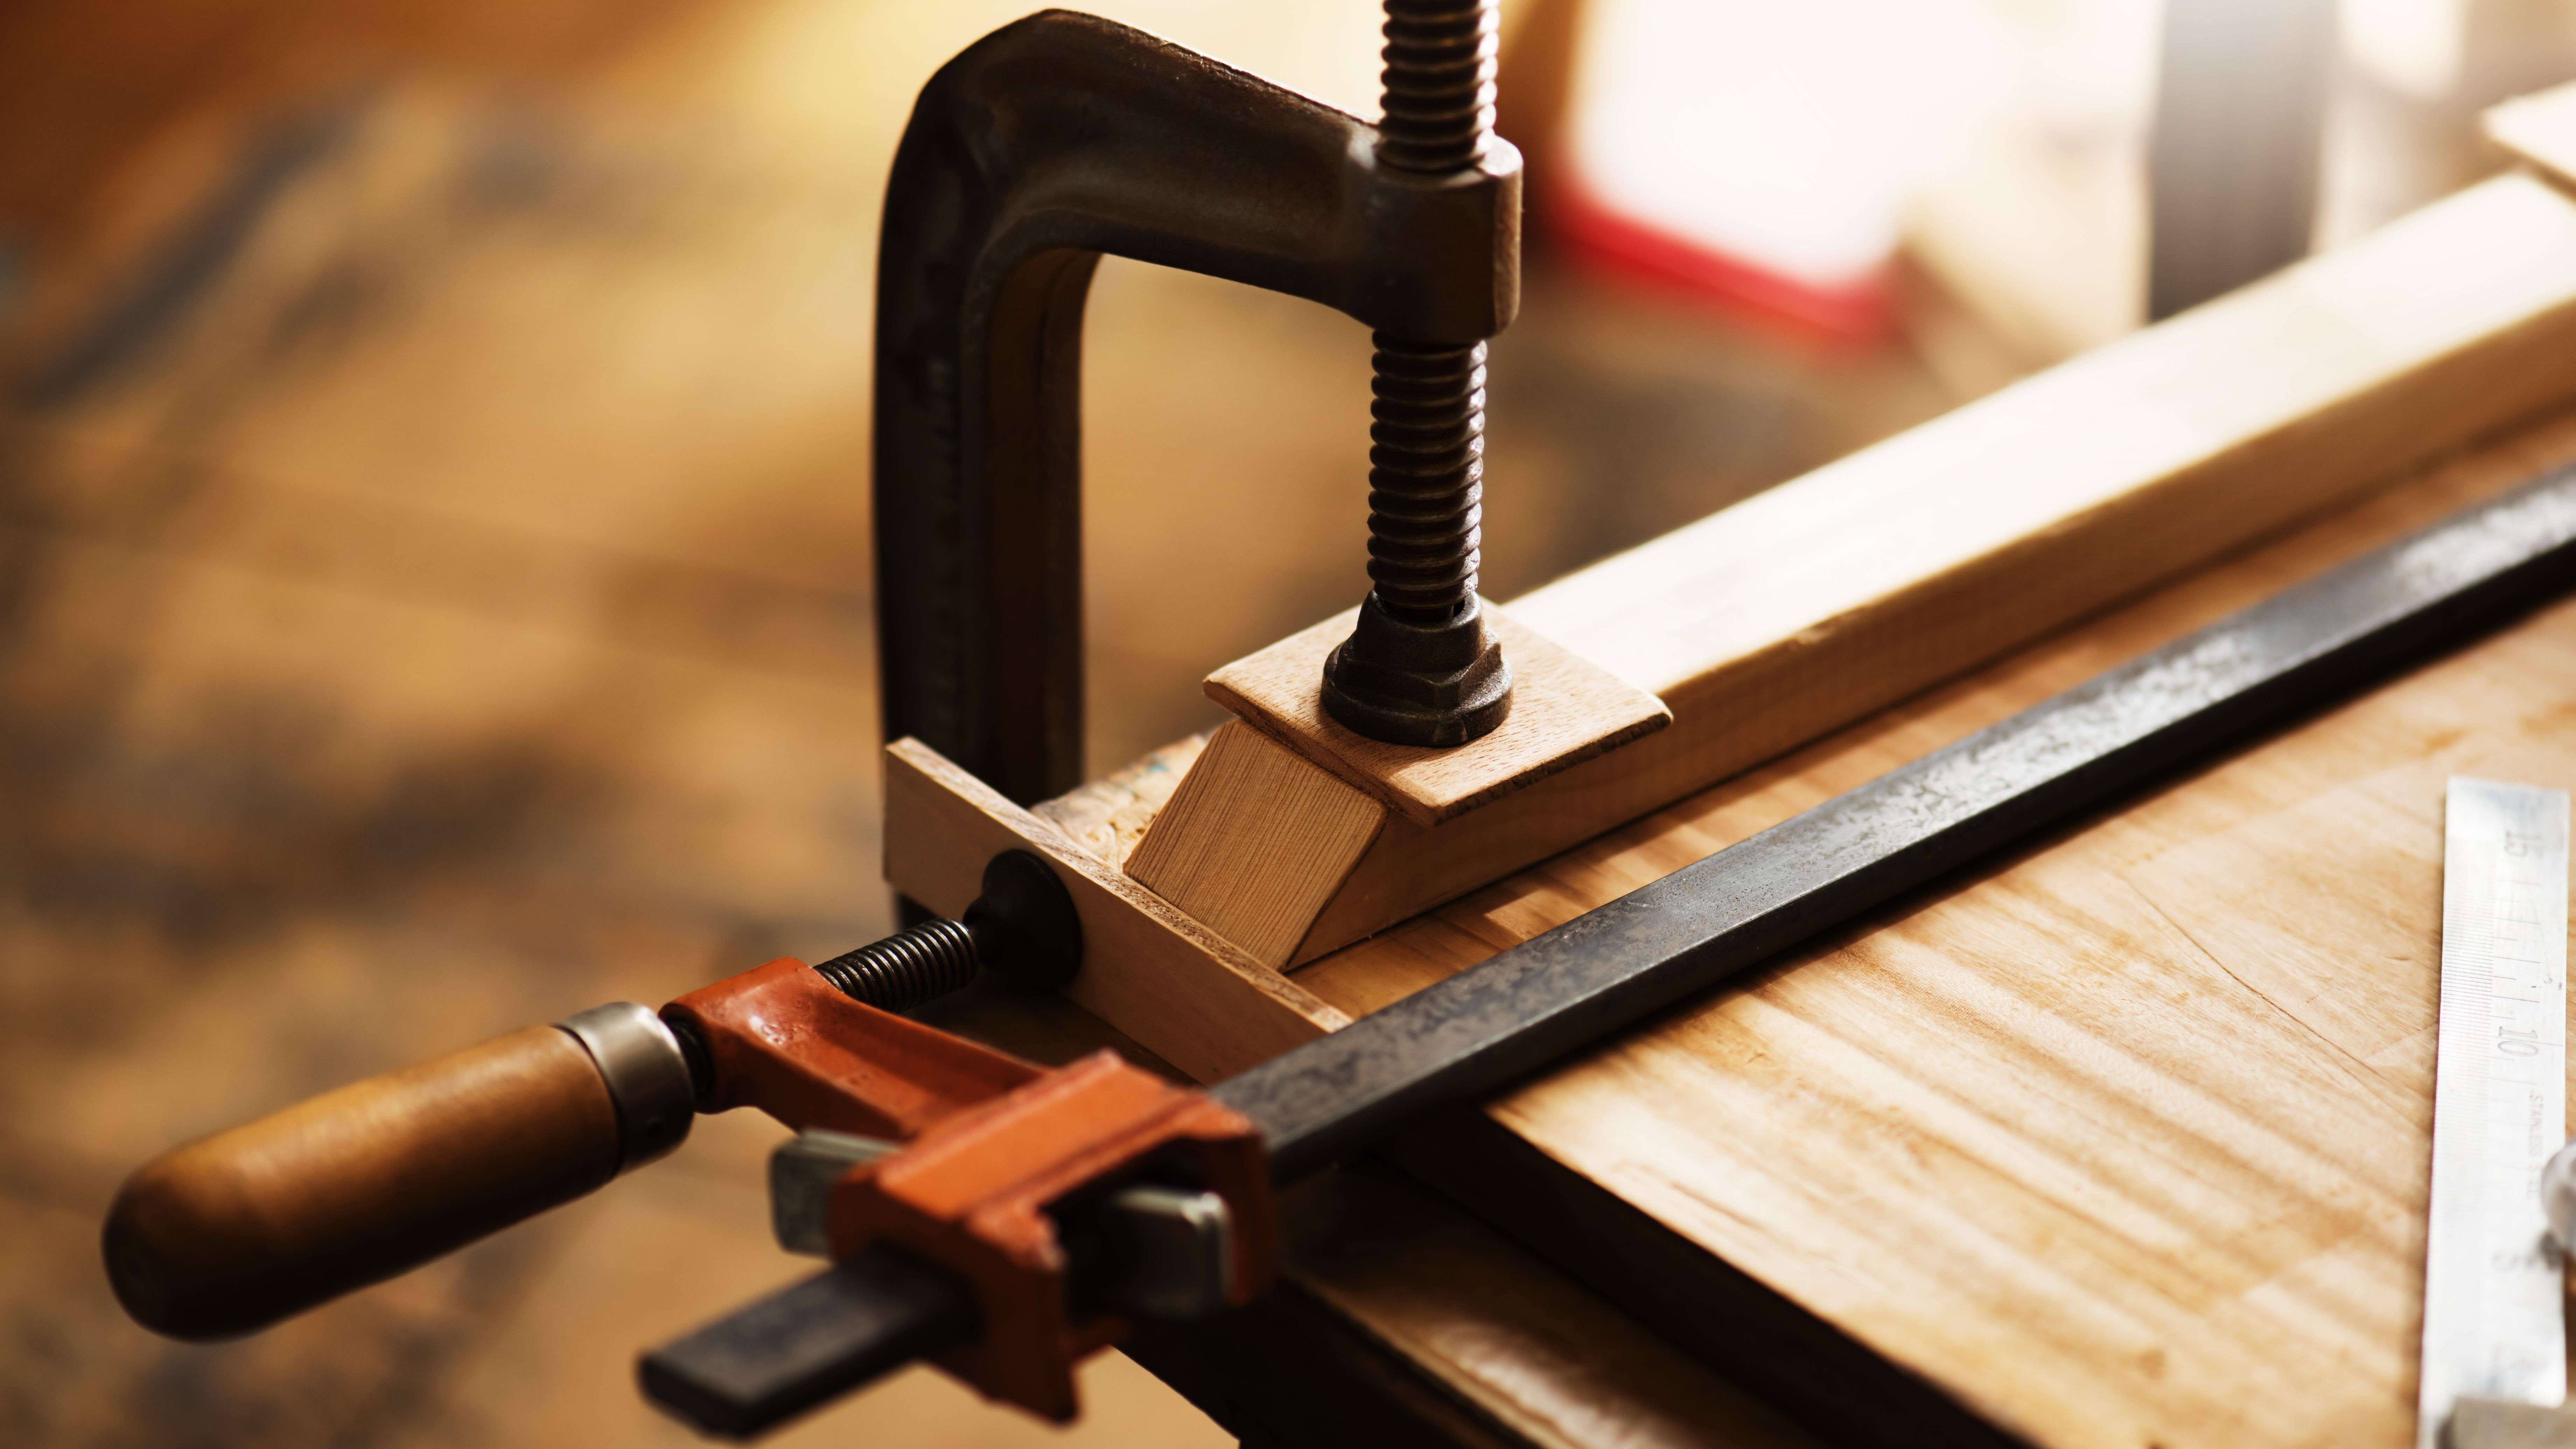 Clamping tools buying guide